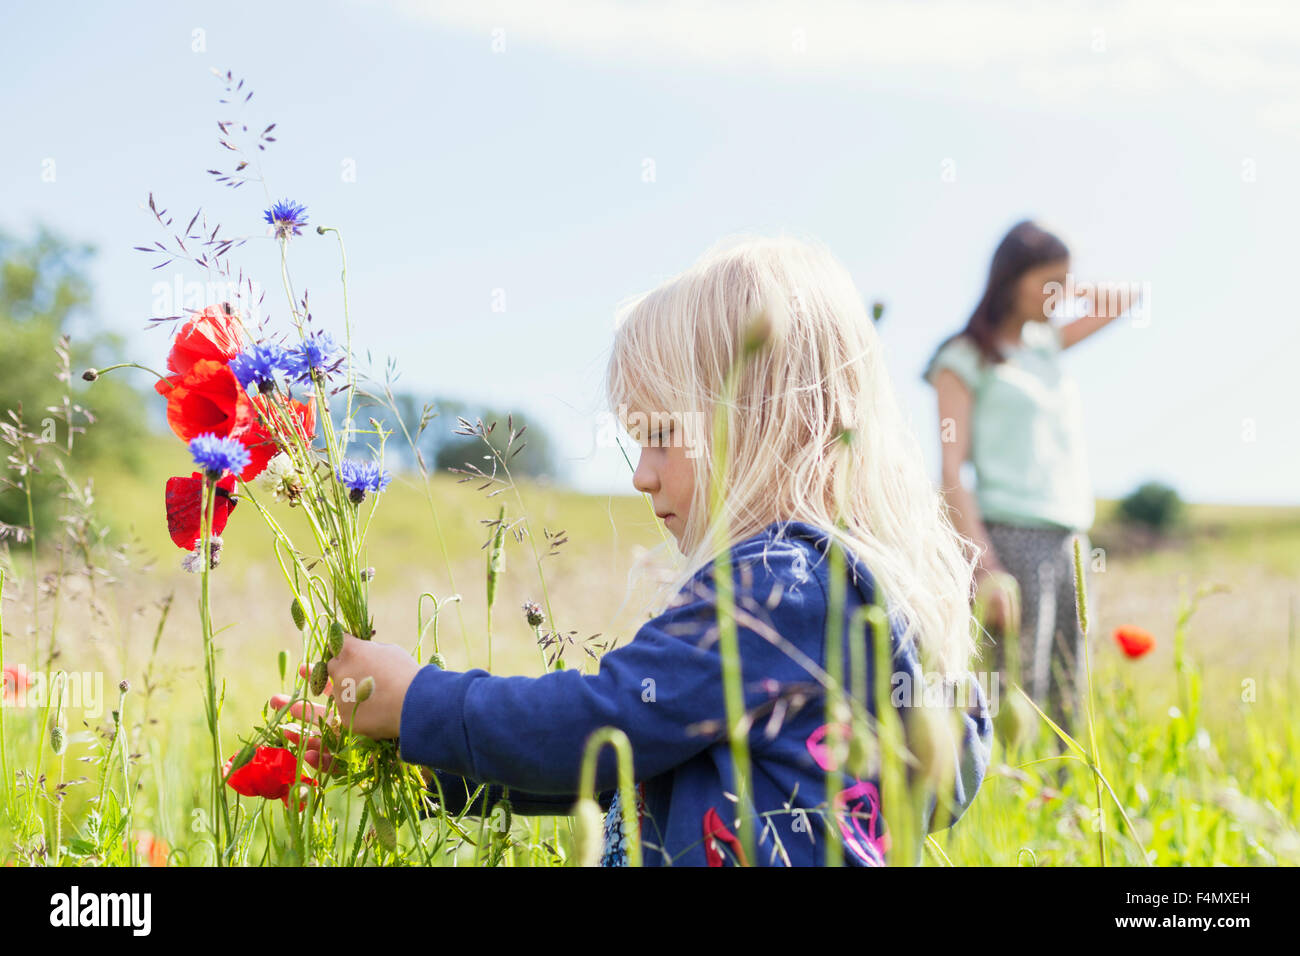 Girl holding wildflowers at grassy field - Stock Image